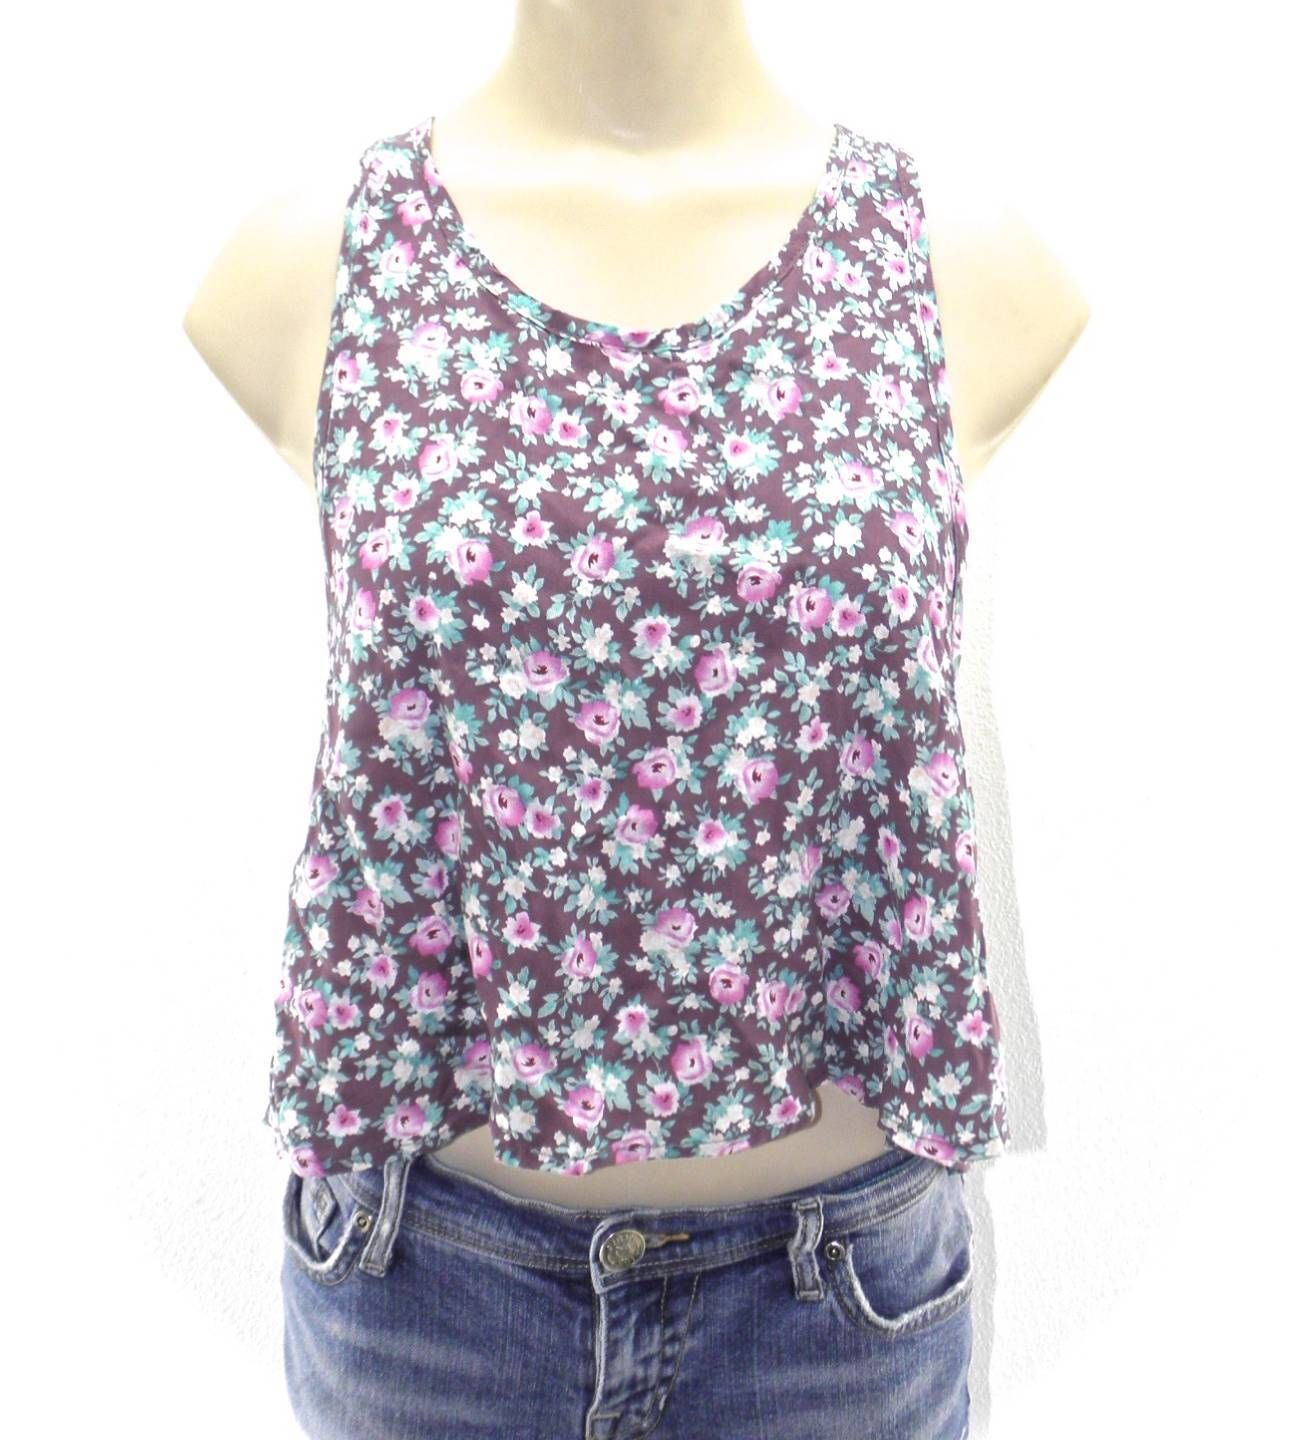 NEW WOMENS ABOUND TANK TOP BROWN FLORAL ROSE PRINT M MEDIUM SHIRT